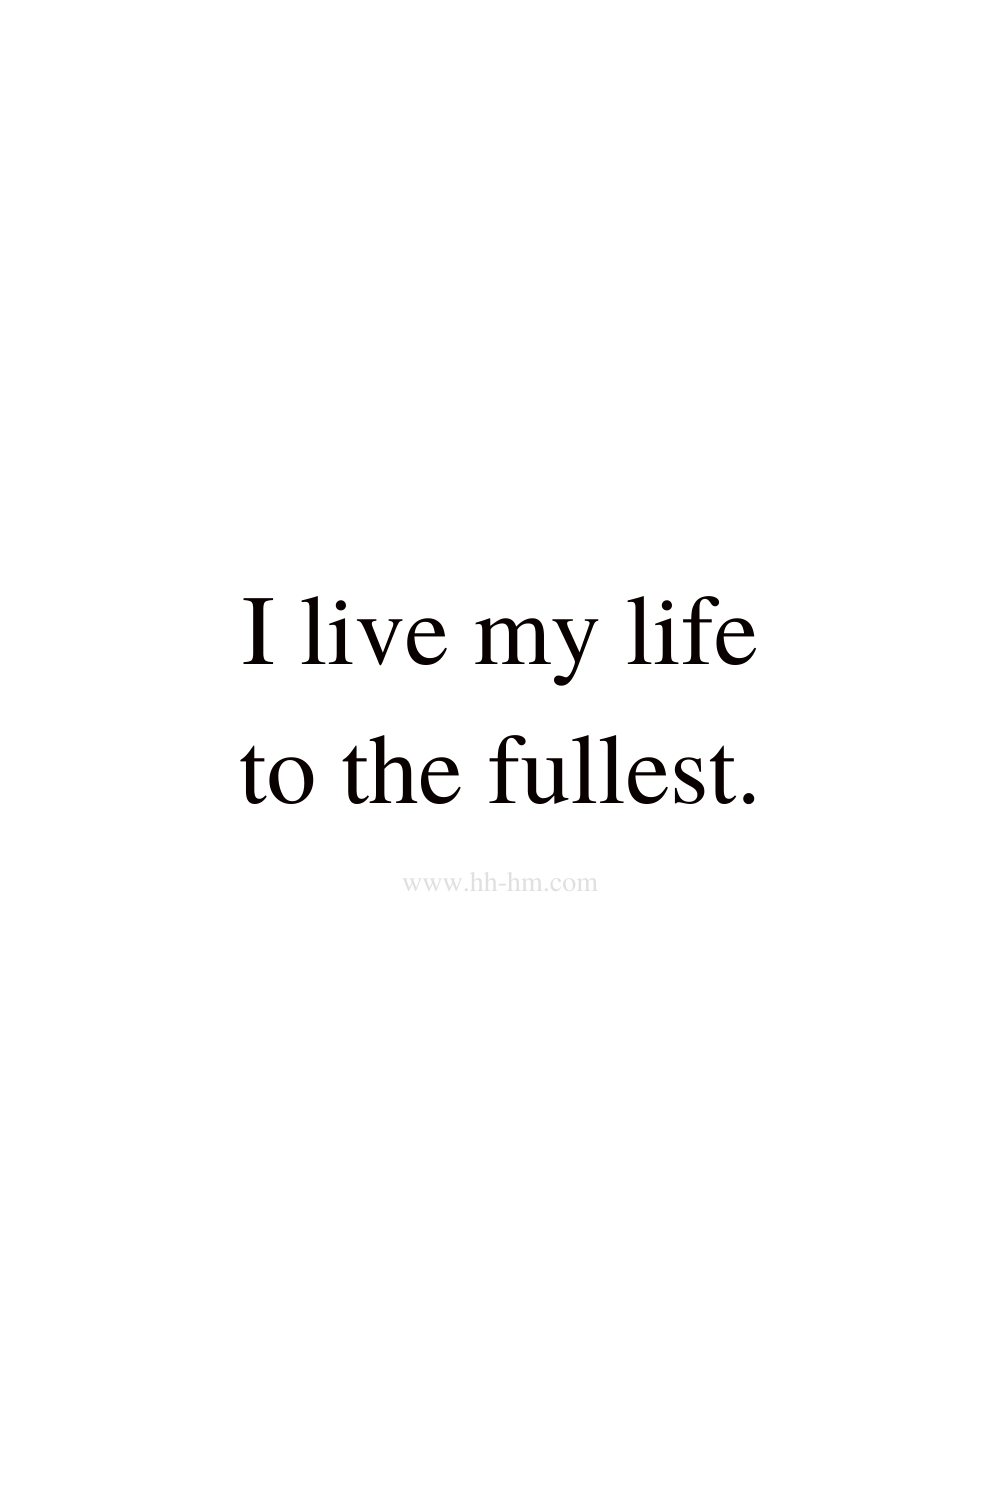 I live my life to the fullest - morning affirmations